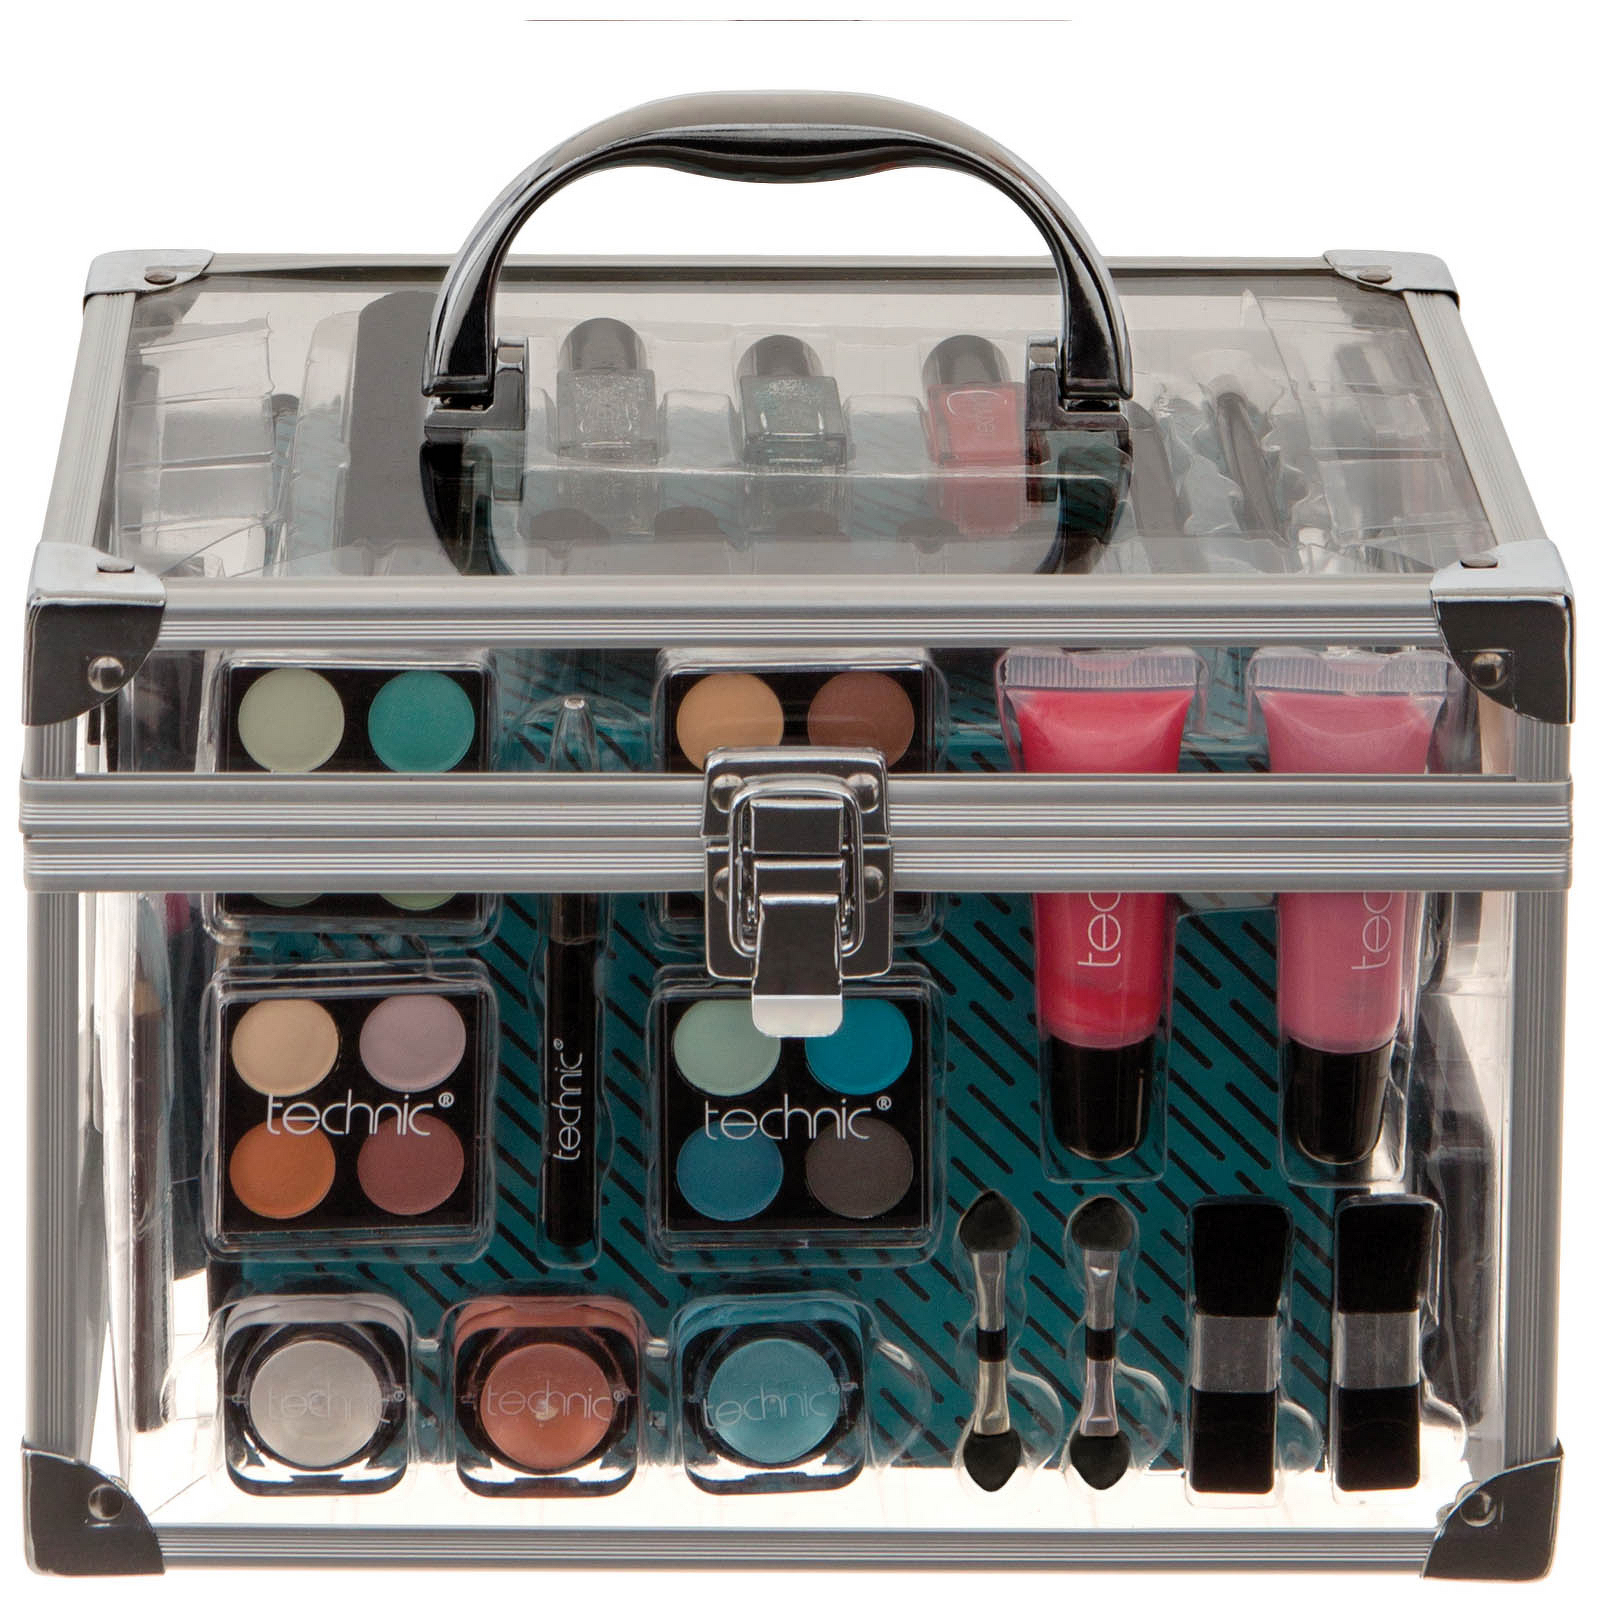 technic Gift Sets Essential Cosmetics Large Clear Carry Case